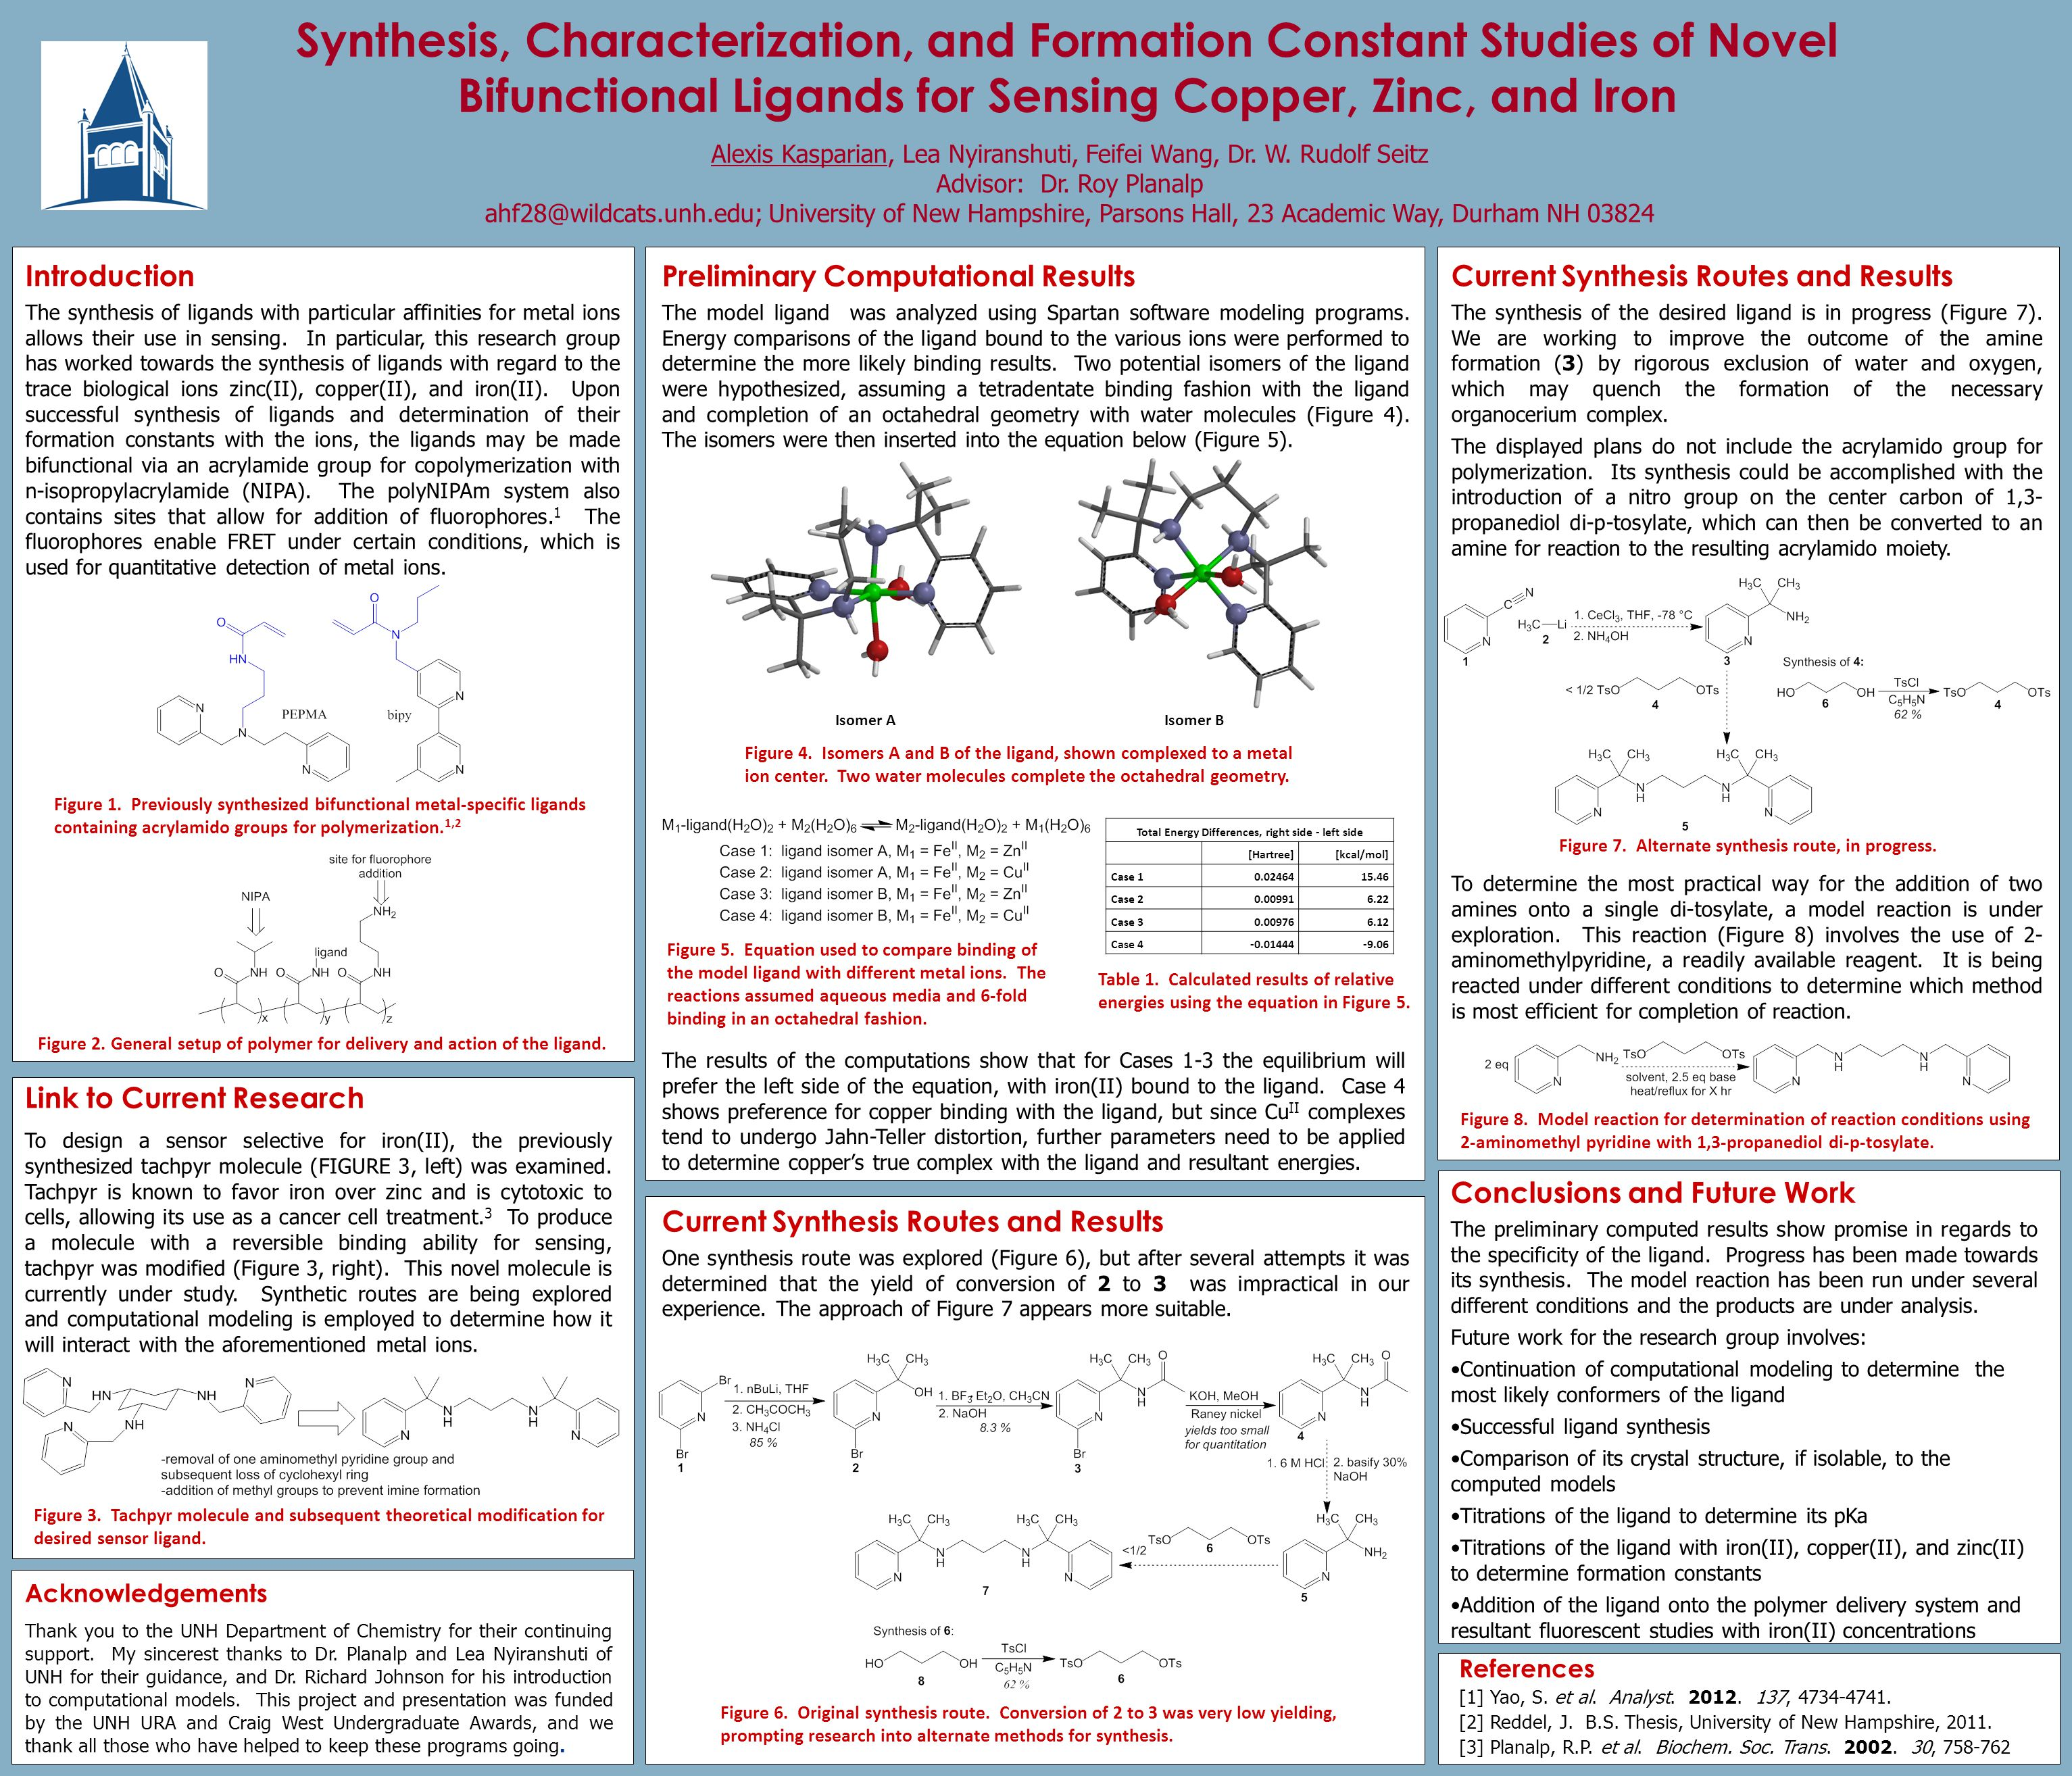 Synthesis, Characterization, and Formation Constant Studies of Novel Bifunctional Ligands for Sensing Copper, Zinc, and Iron Alexis Kasparian, Lea Nyiranshuti, Feifei Wang, Dr.